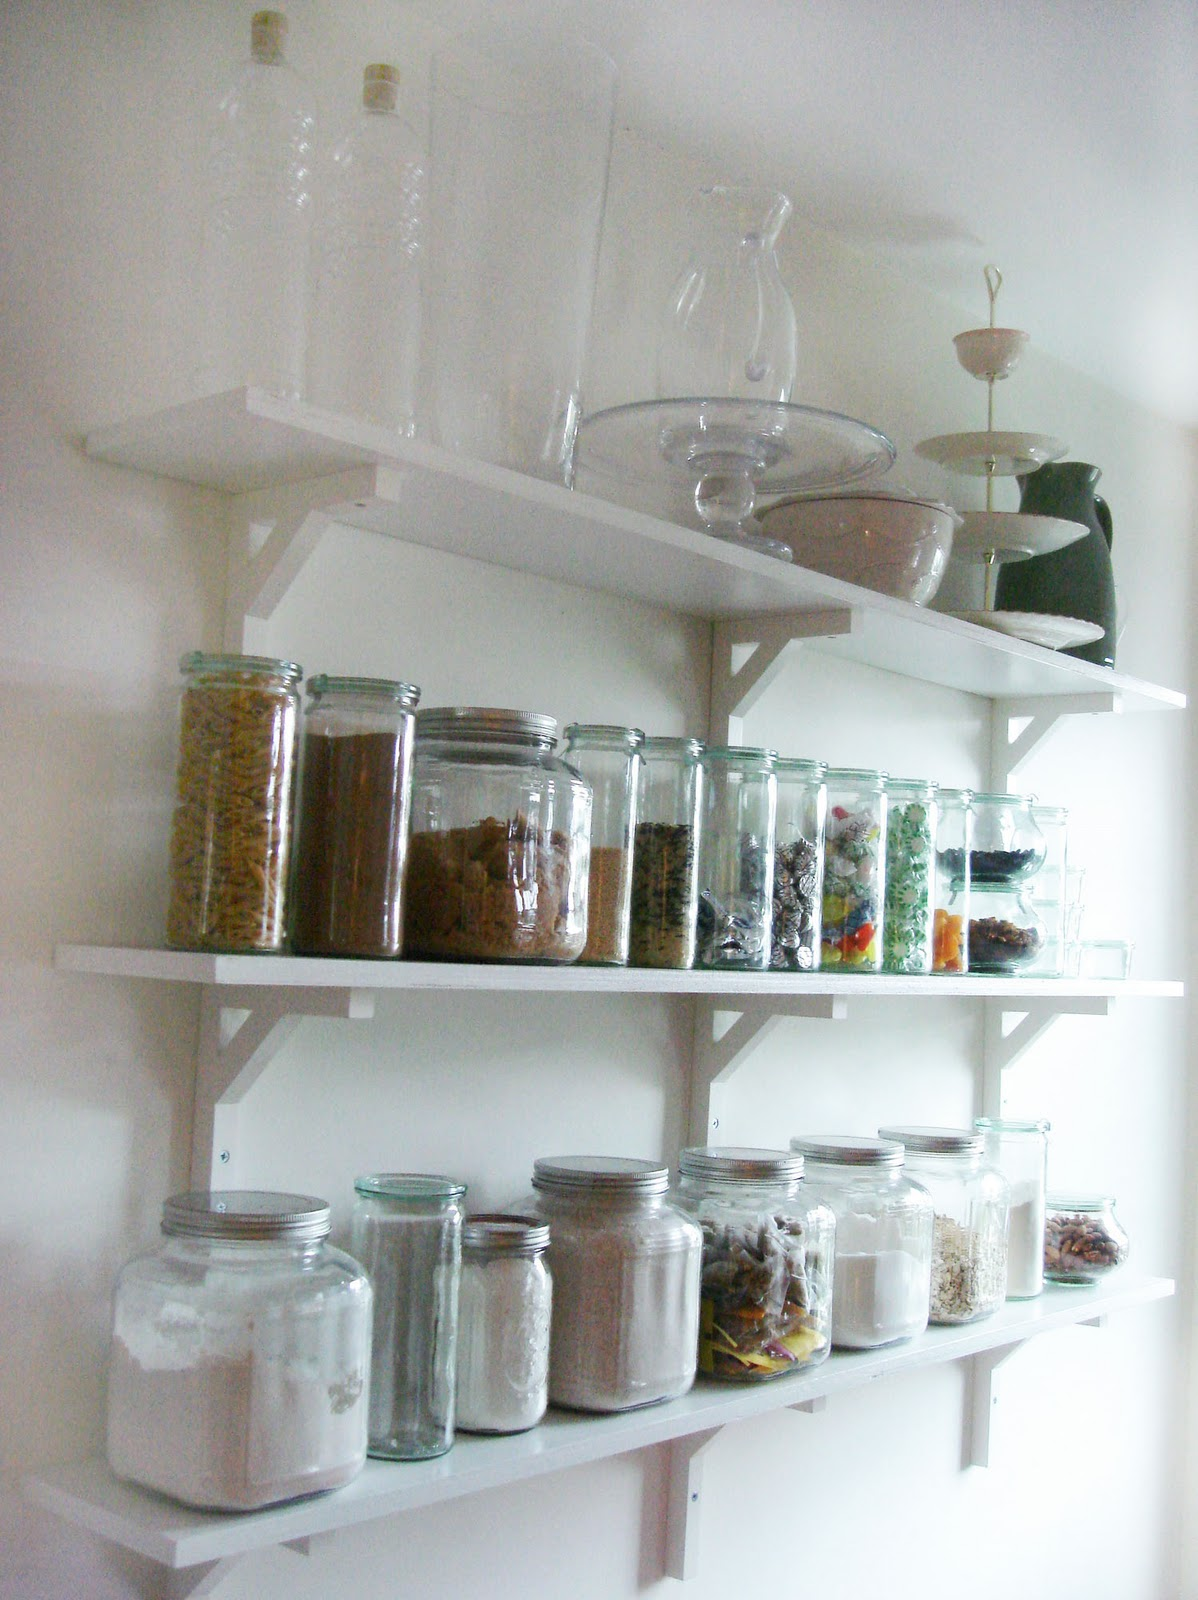 kitchen wall shelving units tops cabinets shanty2chic dining room floating shelves by myneutralnest linda harriett home improvements